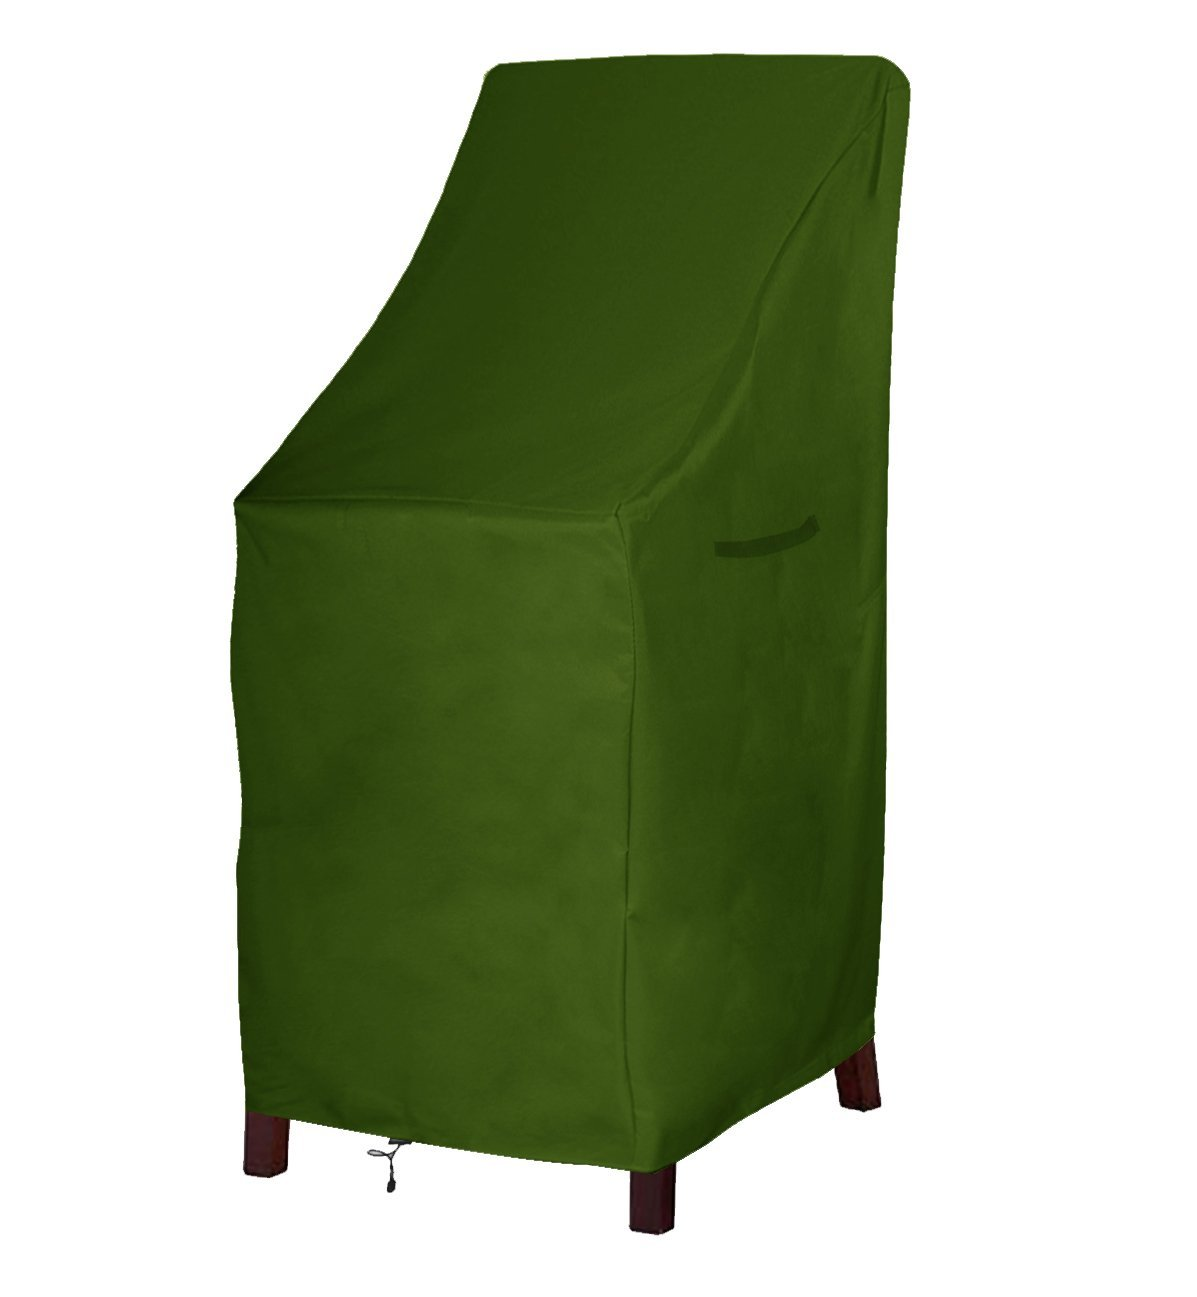 Get Quotations Patio Chair Covers Stackable Chairs Cover Outdoor Premium Furniture Durable And Water